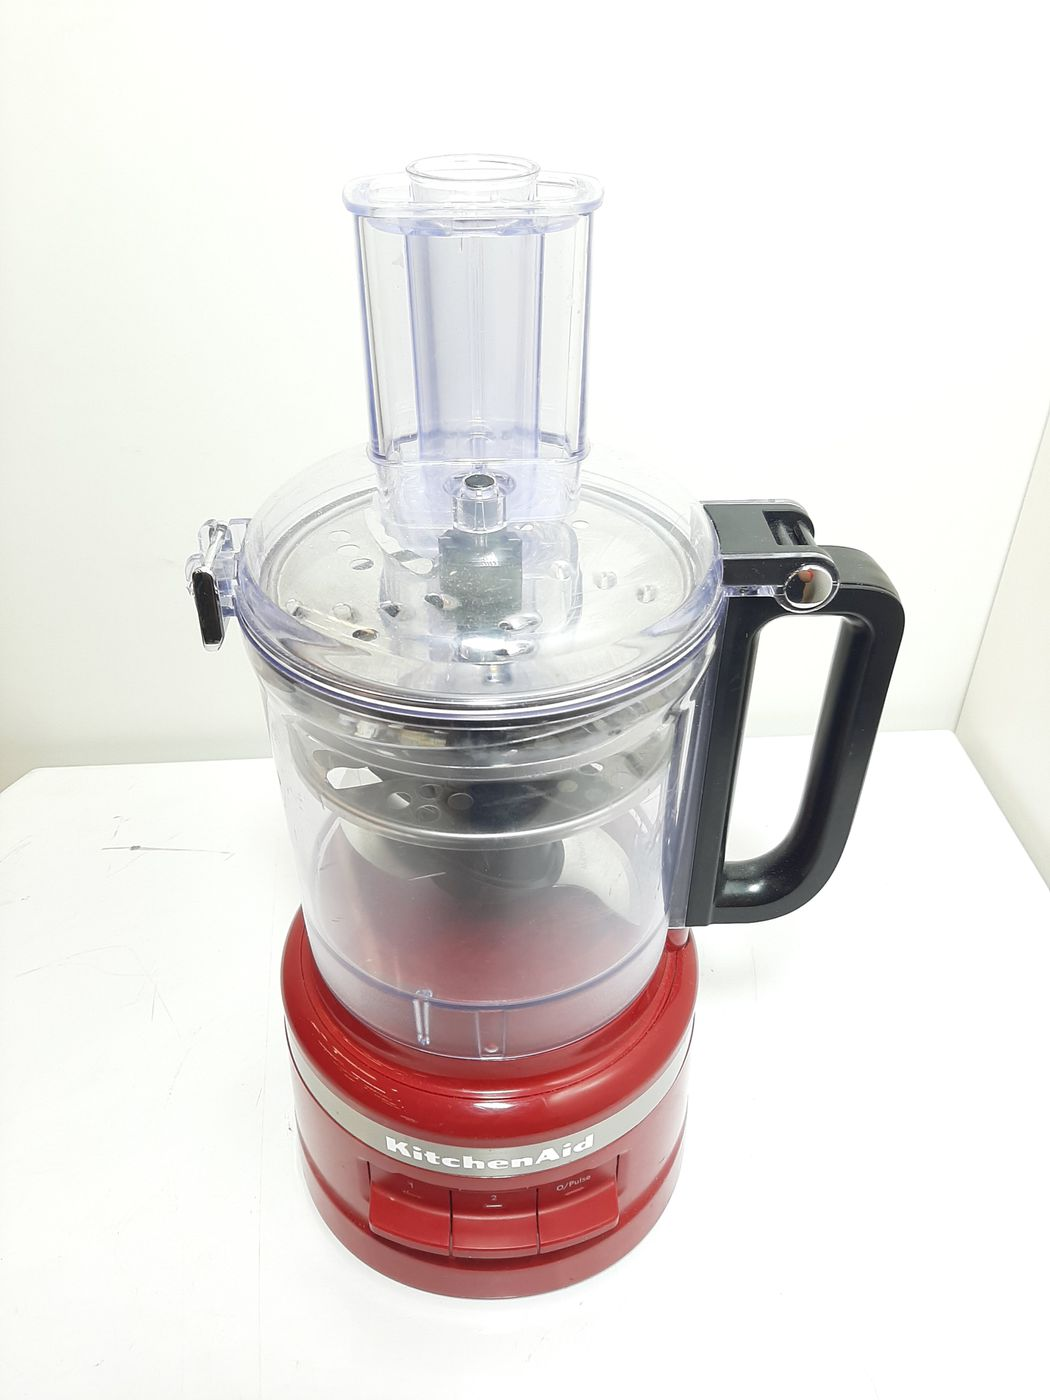 PROCESSADOR KITCHENAID 2,1L - EMPIRE RED - VE